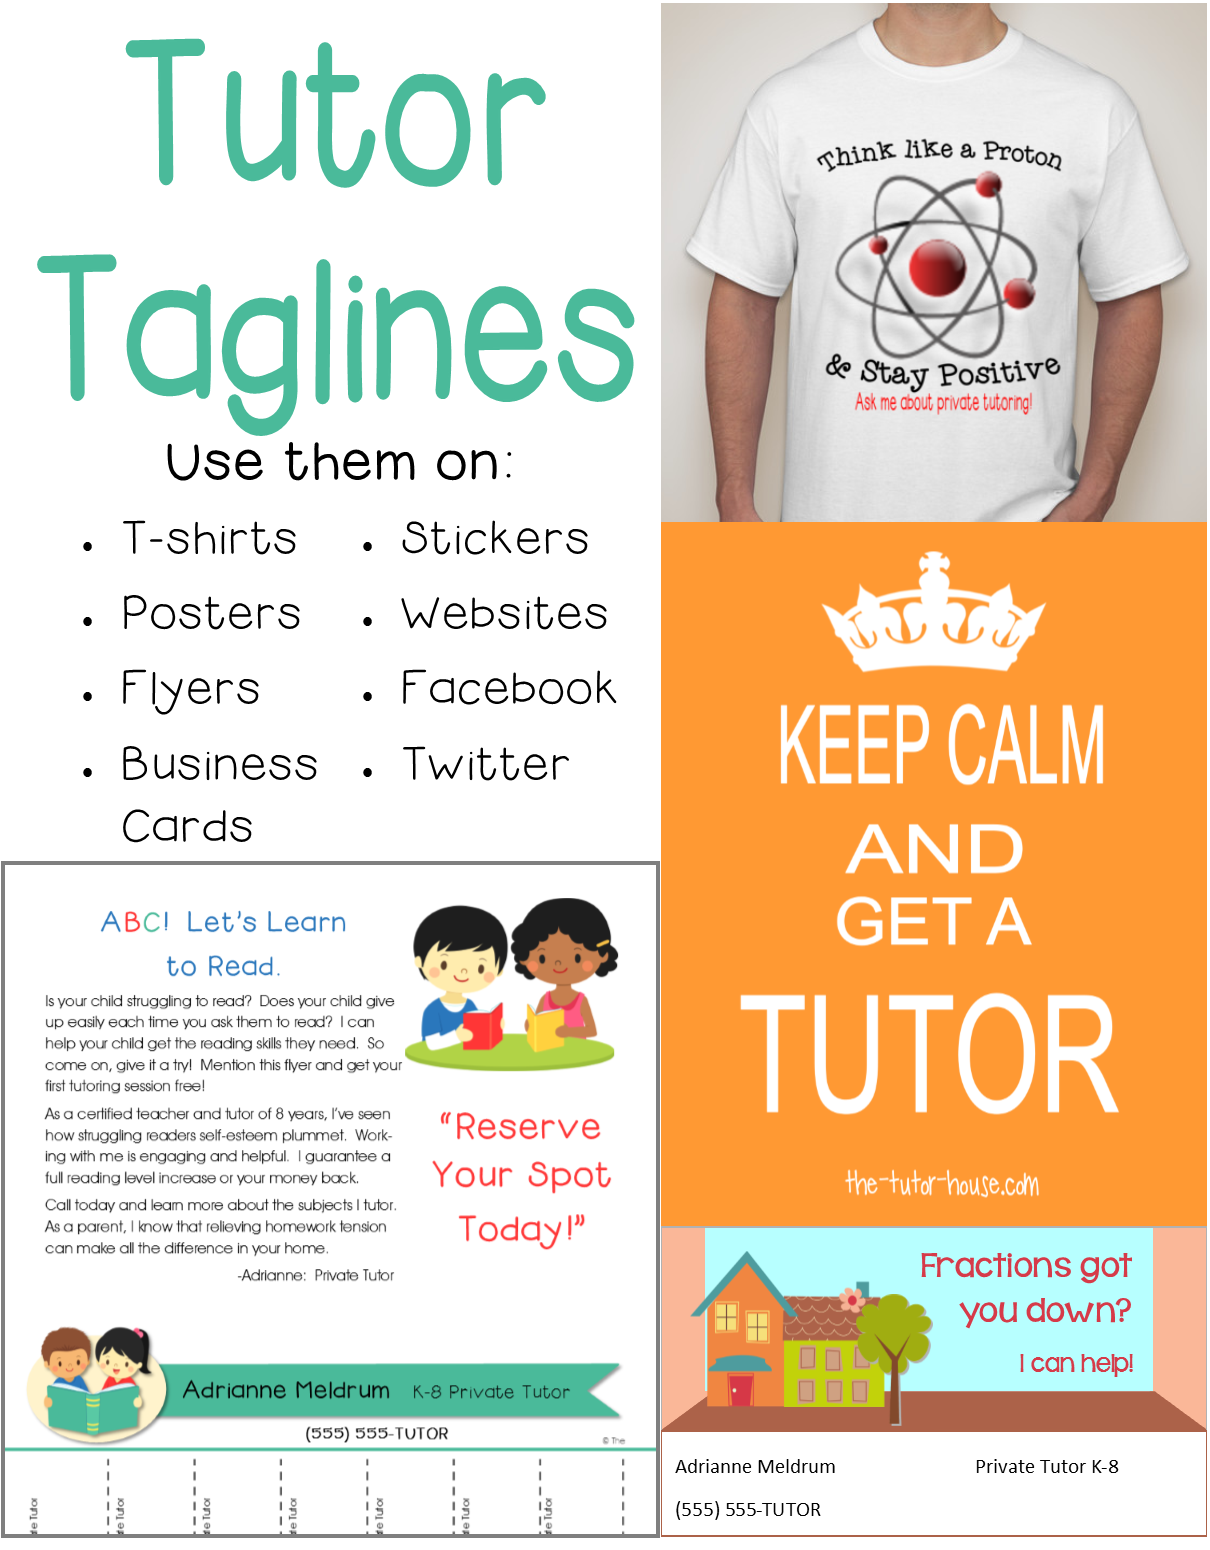 Reading Tutor Network Dyslexia Tutors: Taglines For Tutors. Looking For A Way To Spice Up Your